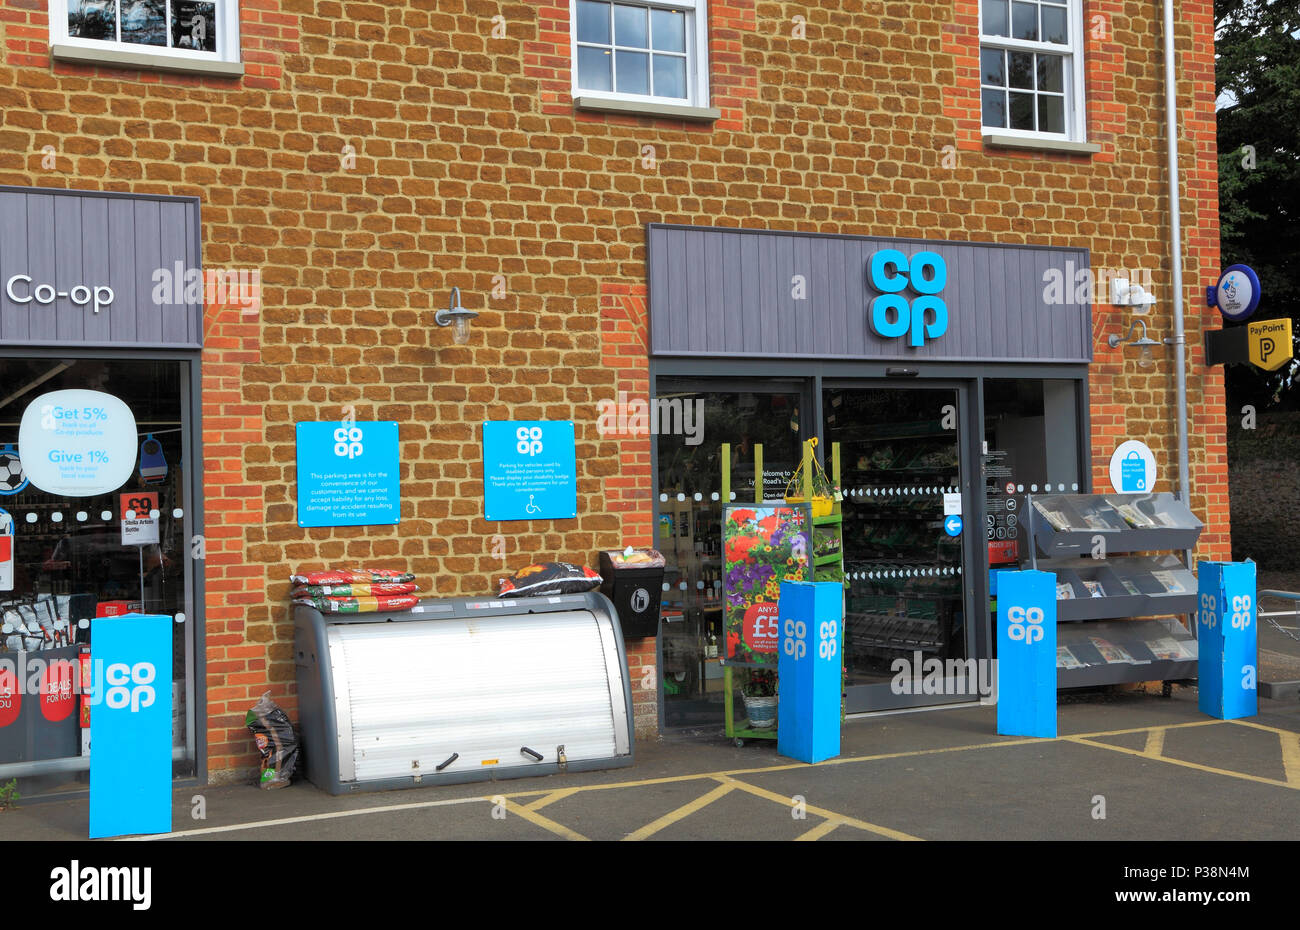 Co Op, Co-Op, shop, store, mini supermarket, small village, Snettisham, Norfolk - Stock Image